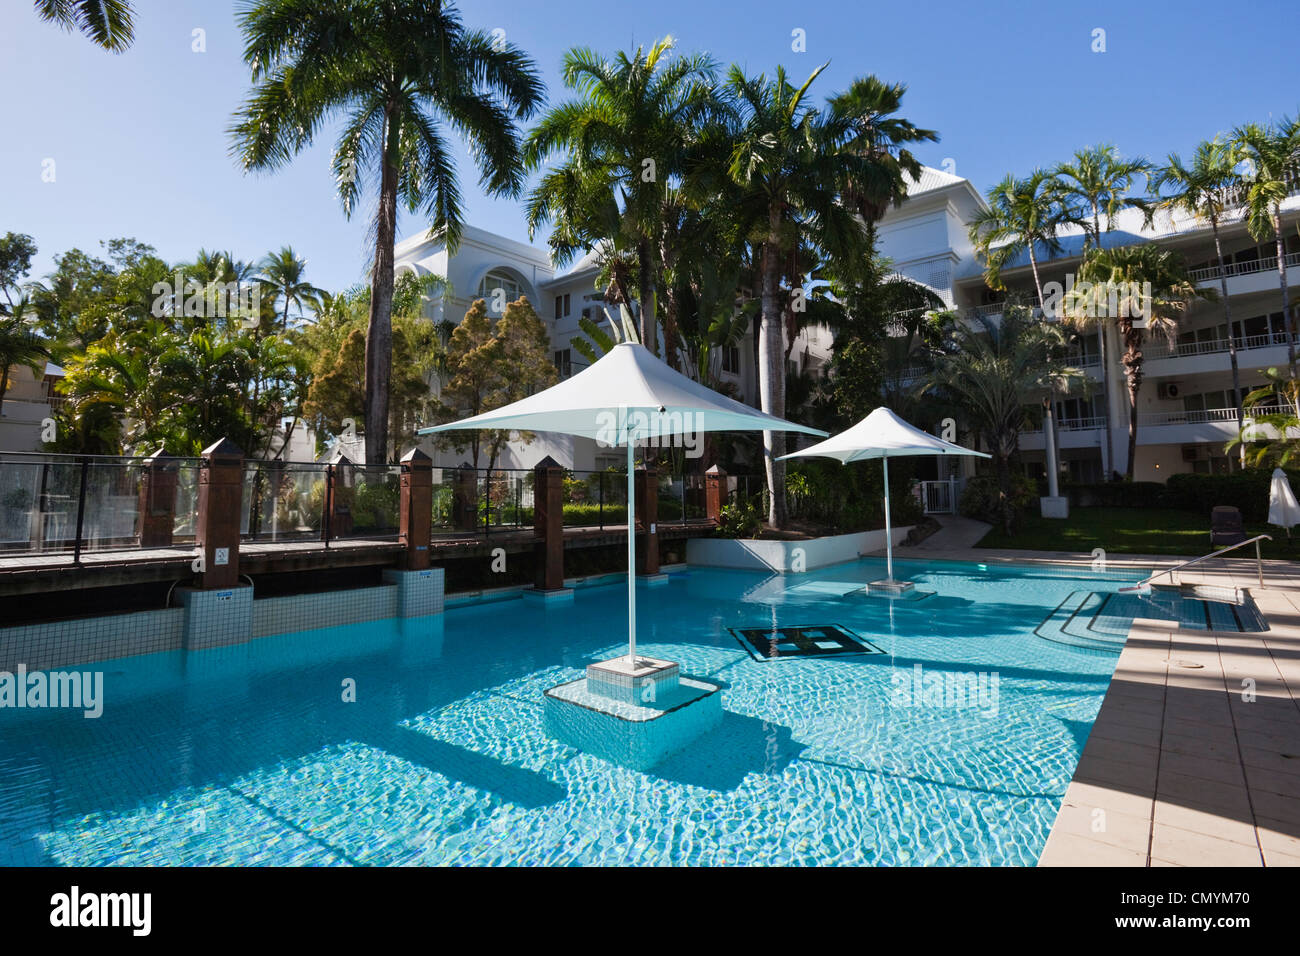 Swimming Pool At Angsana Resort And Spa Palm Cove Cairns Stock Photo Royalty Free Image